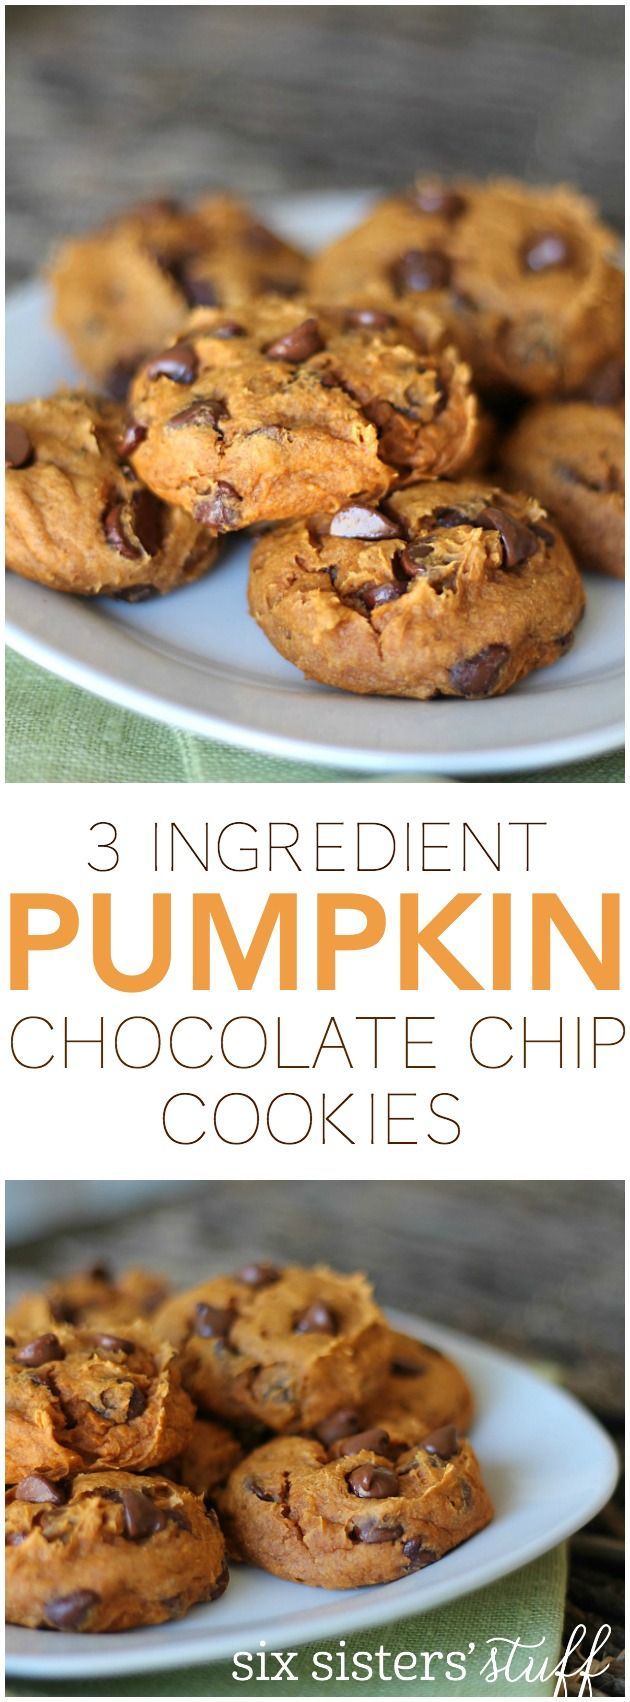 3 Ingredient Pumpkin Chocolate Chip Cookies from SixSistersStuff.com. So easy and delicious!